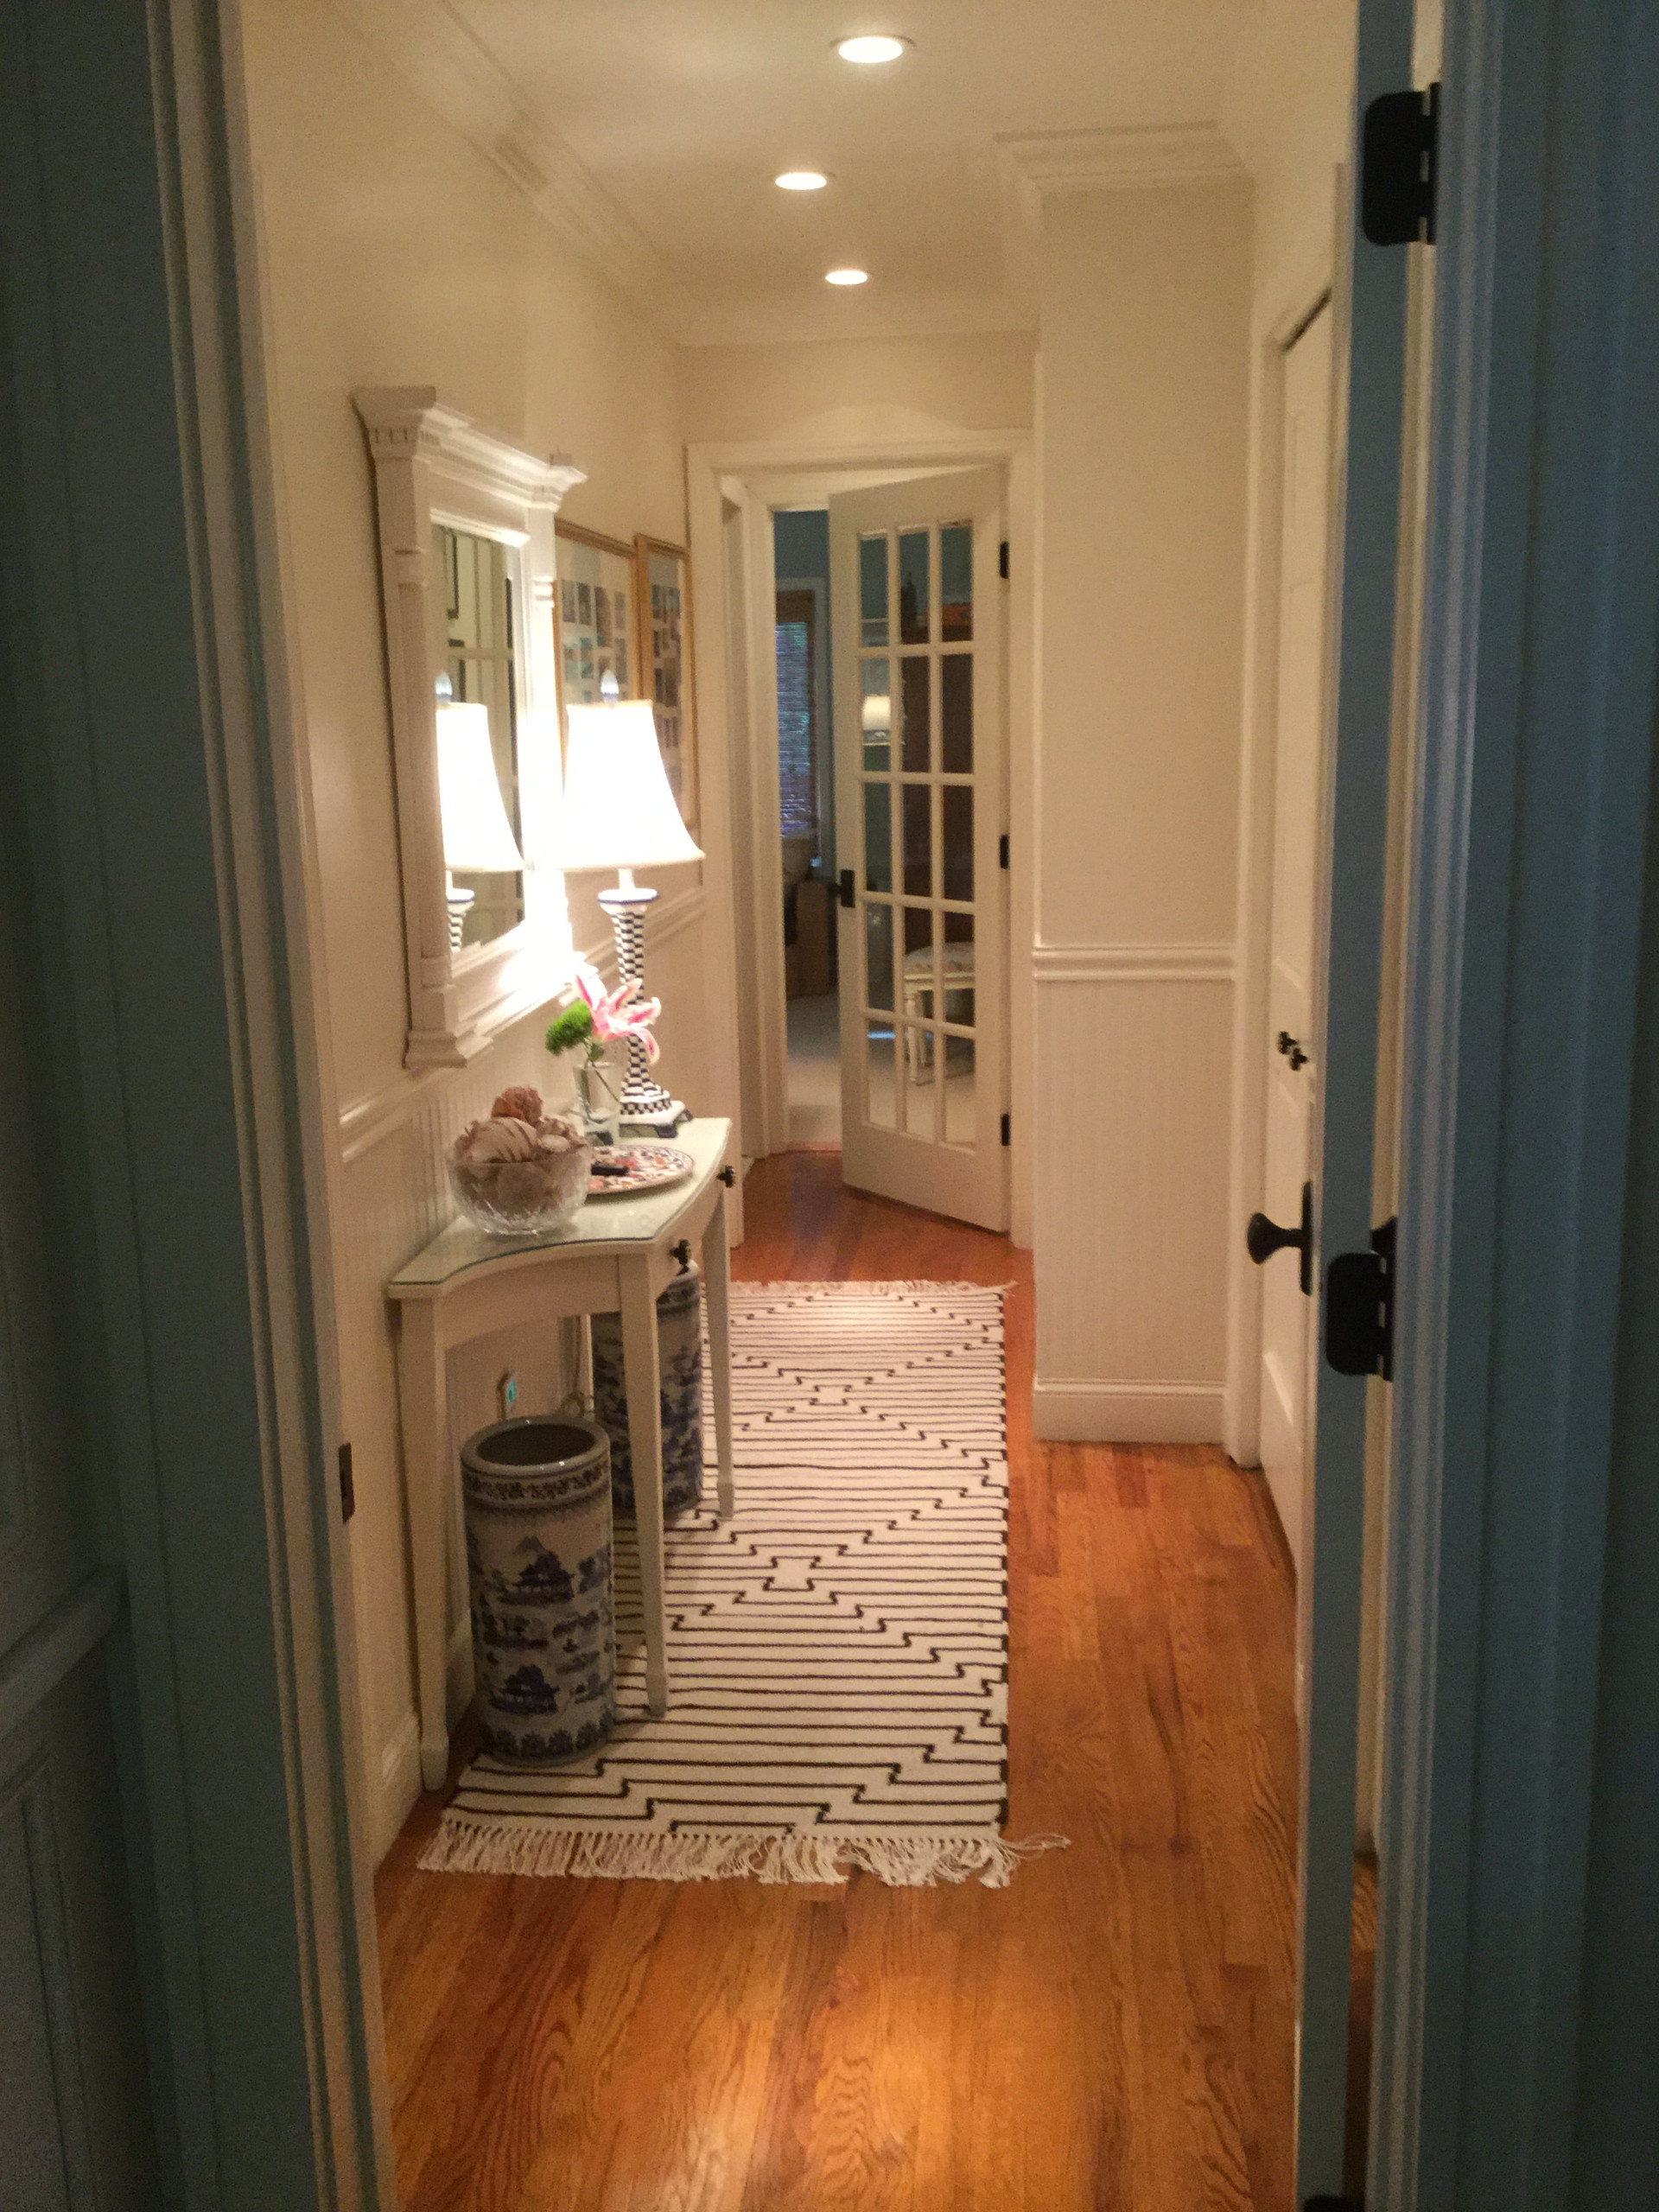 Laundry room/butler's pantry and Back hall